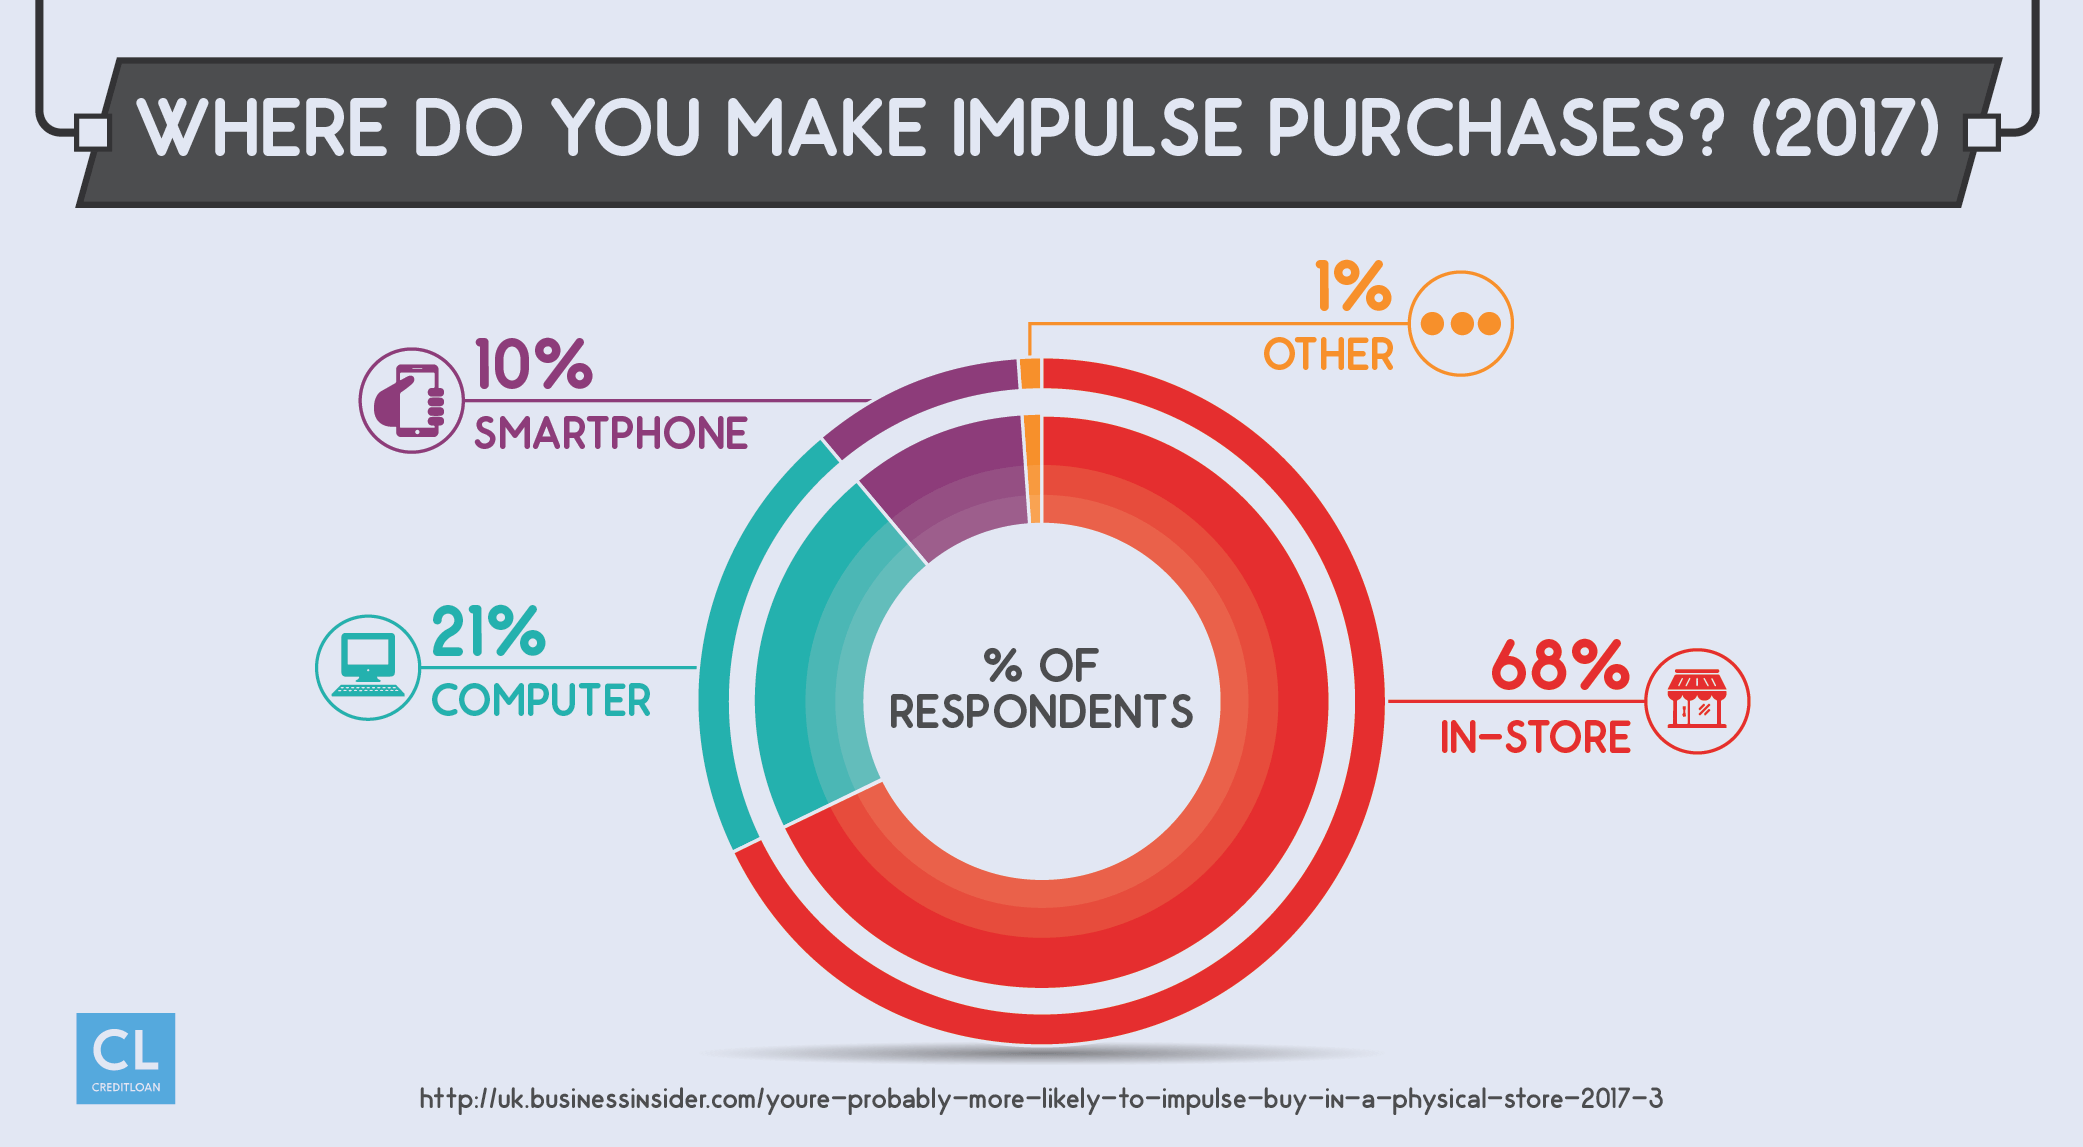 Survey: Where Do You Make Impulse Purchases?